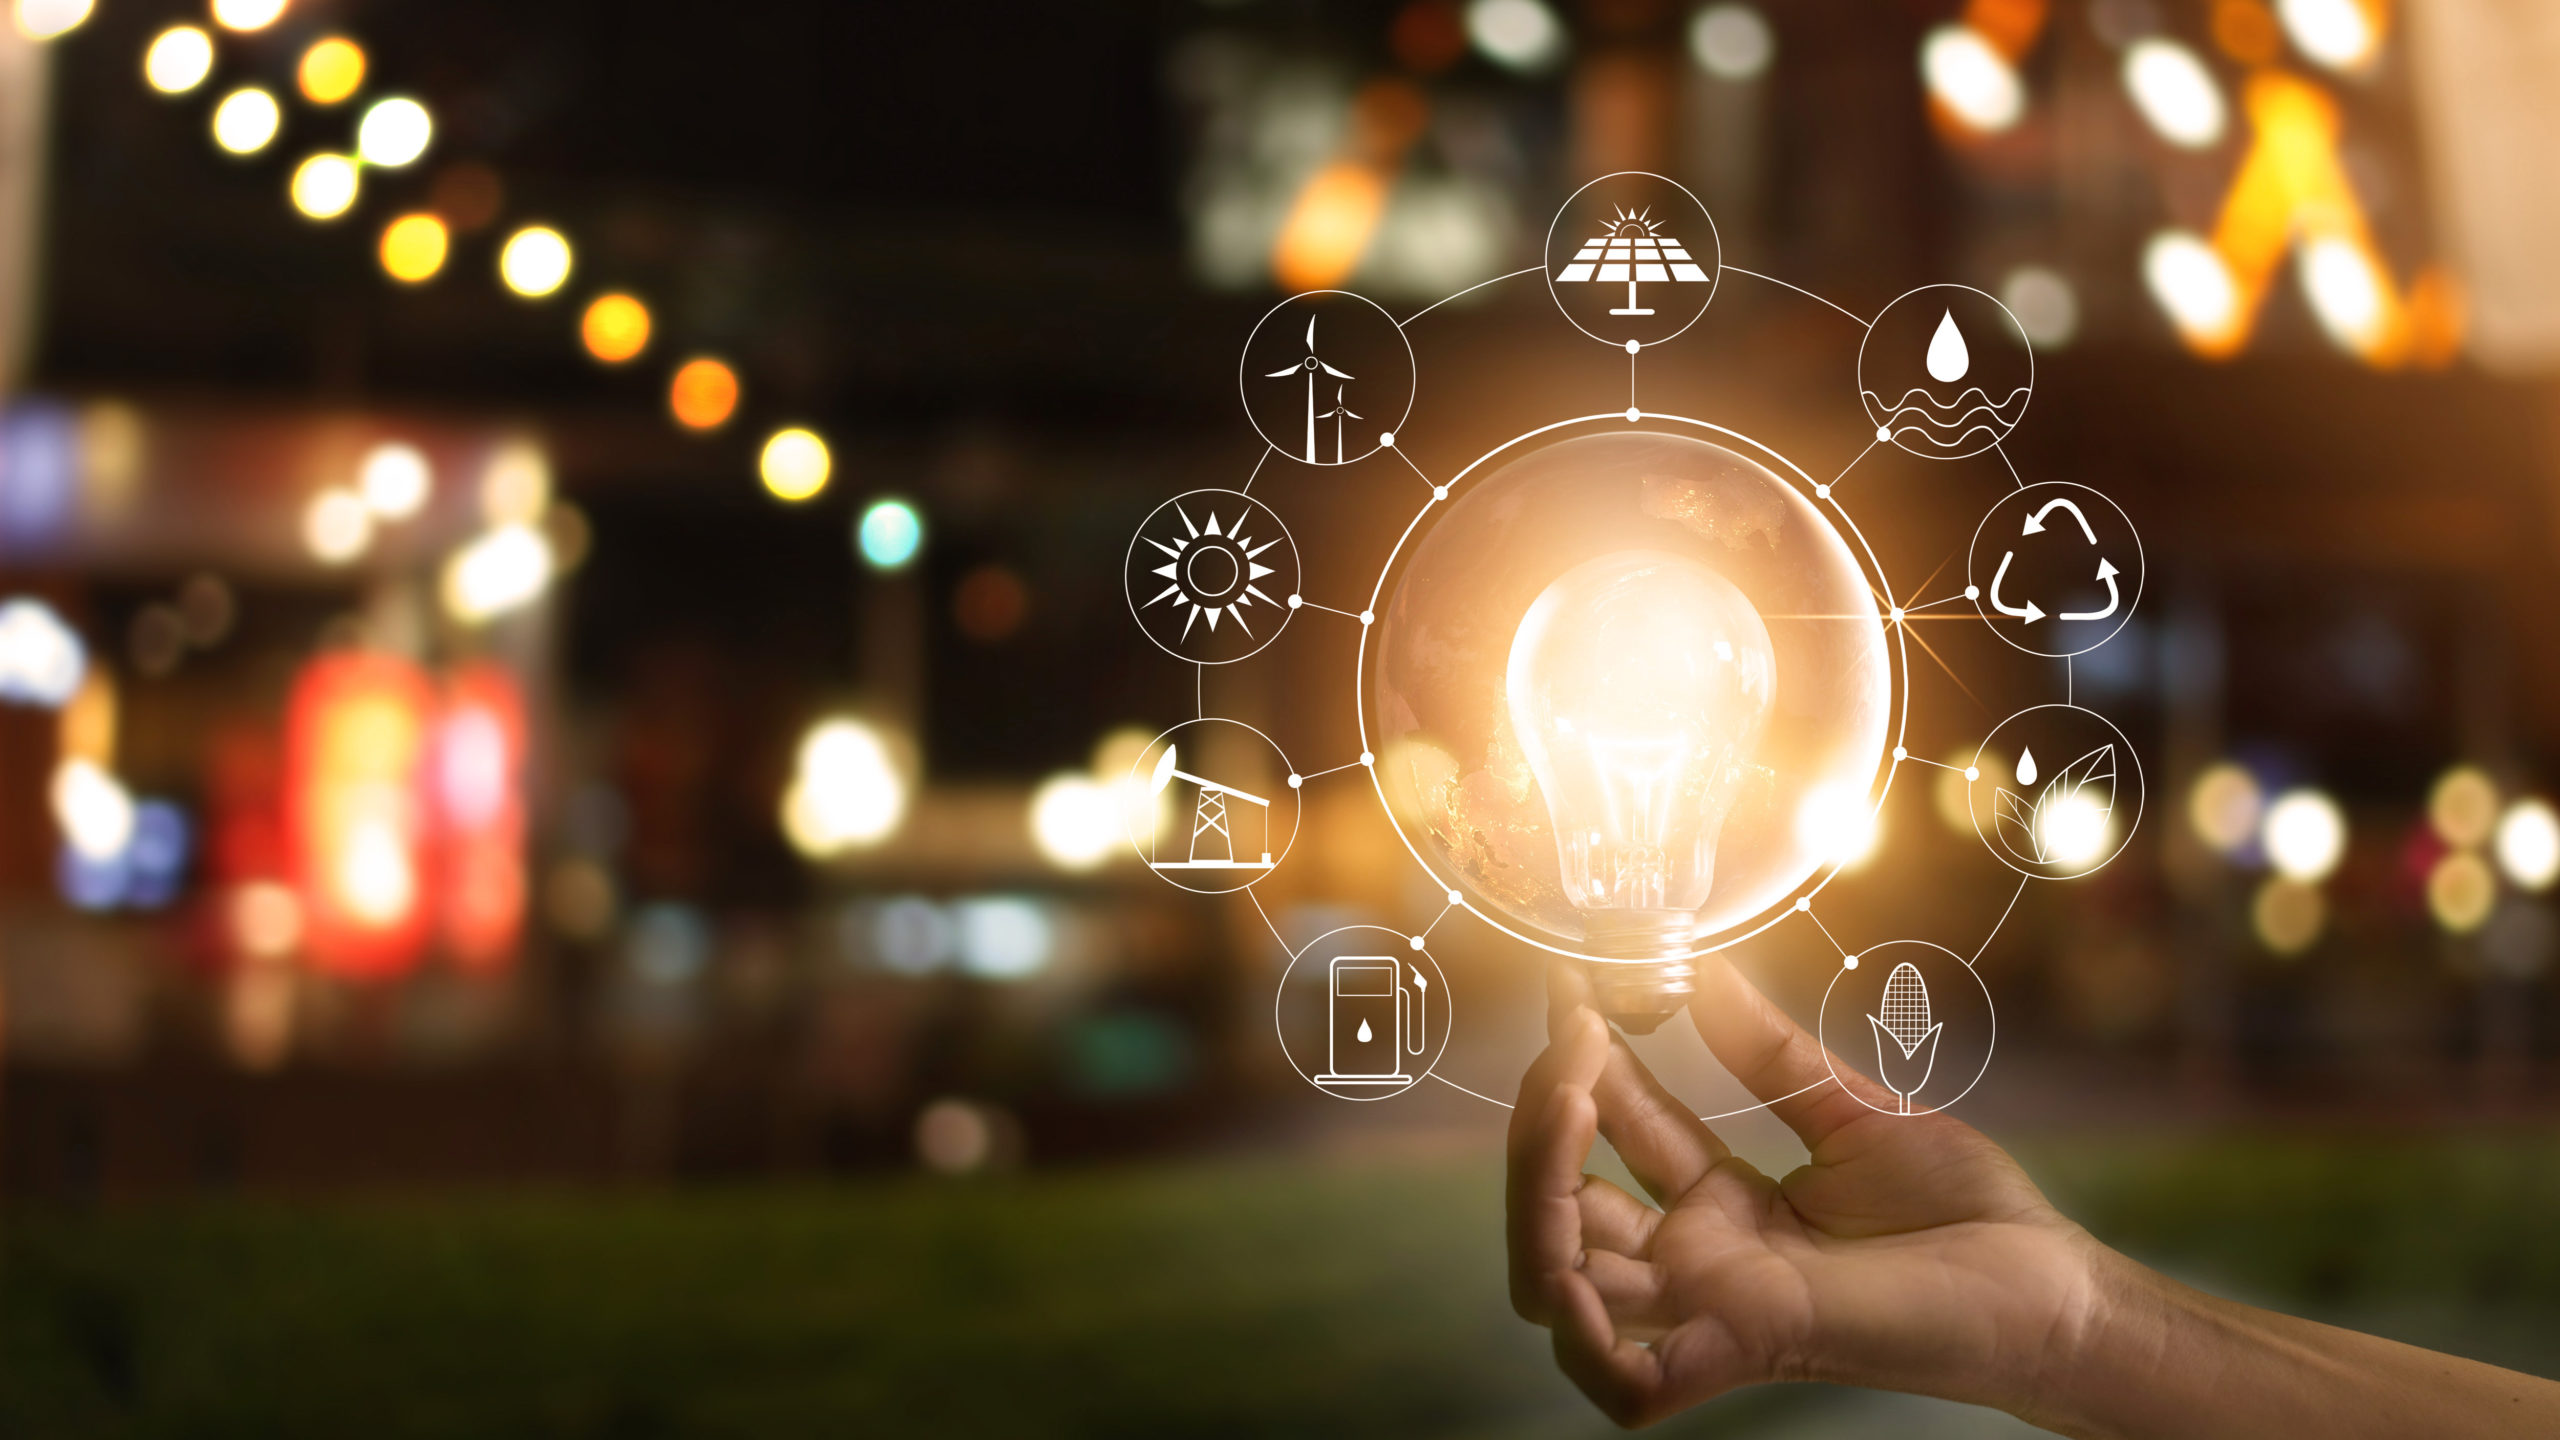 Hand holding light bulb in front of global show the world's consumption with icons energy sources for renewable, sustainable development. Ecology concept. Elements of this image furnished by NASA. - Image